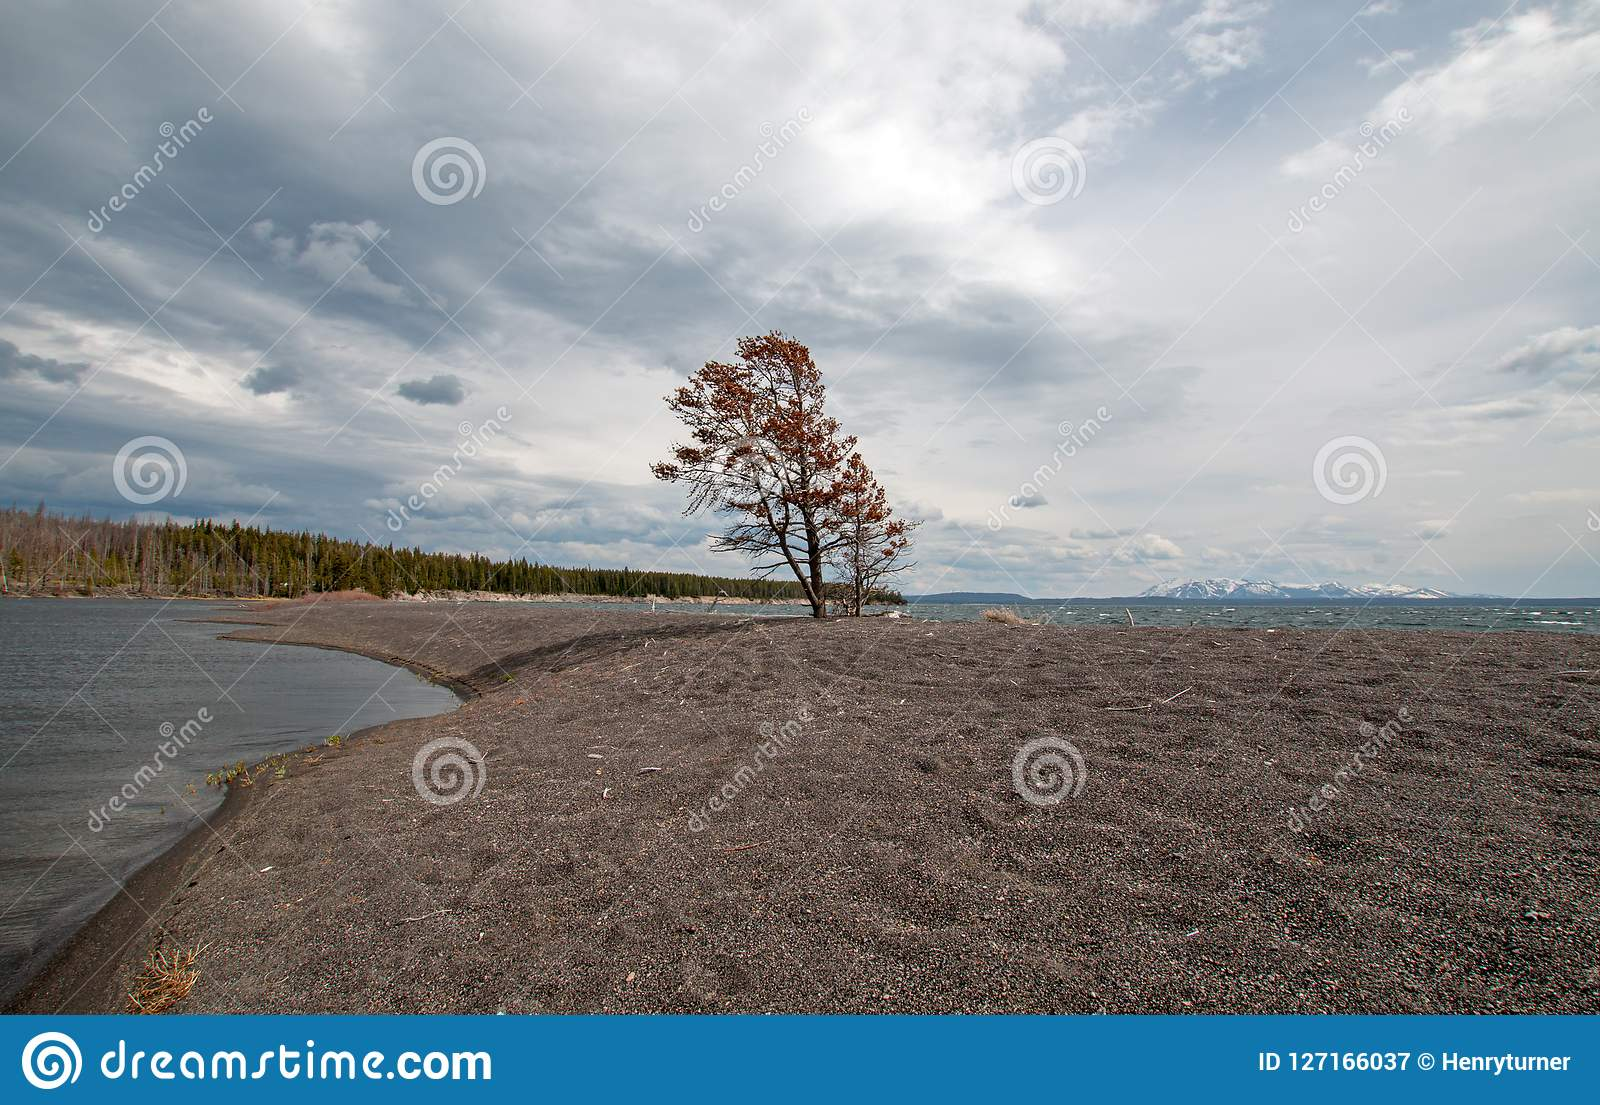 acf04bce8693c Lone tree on sandbar called Hard Road to Follow on the banks of Yellowstone  Lake in